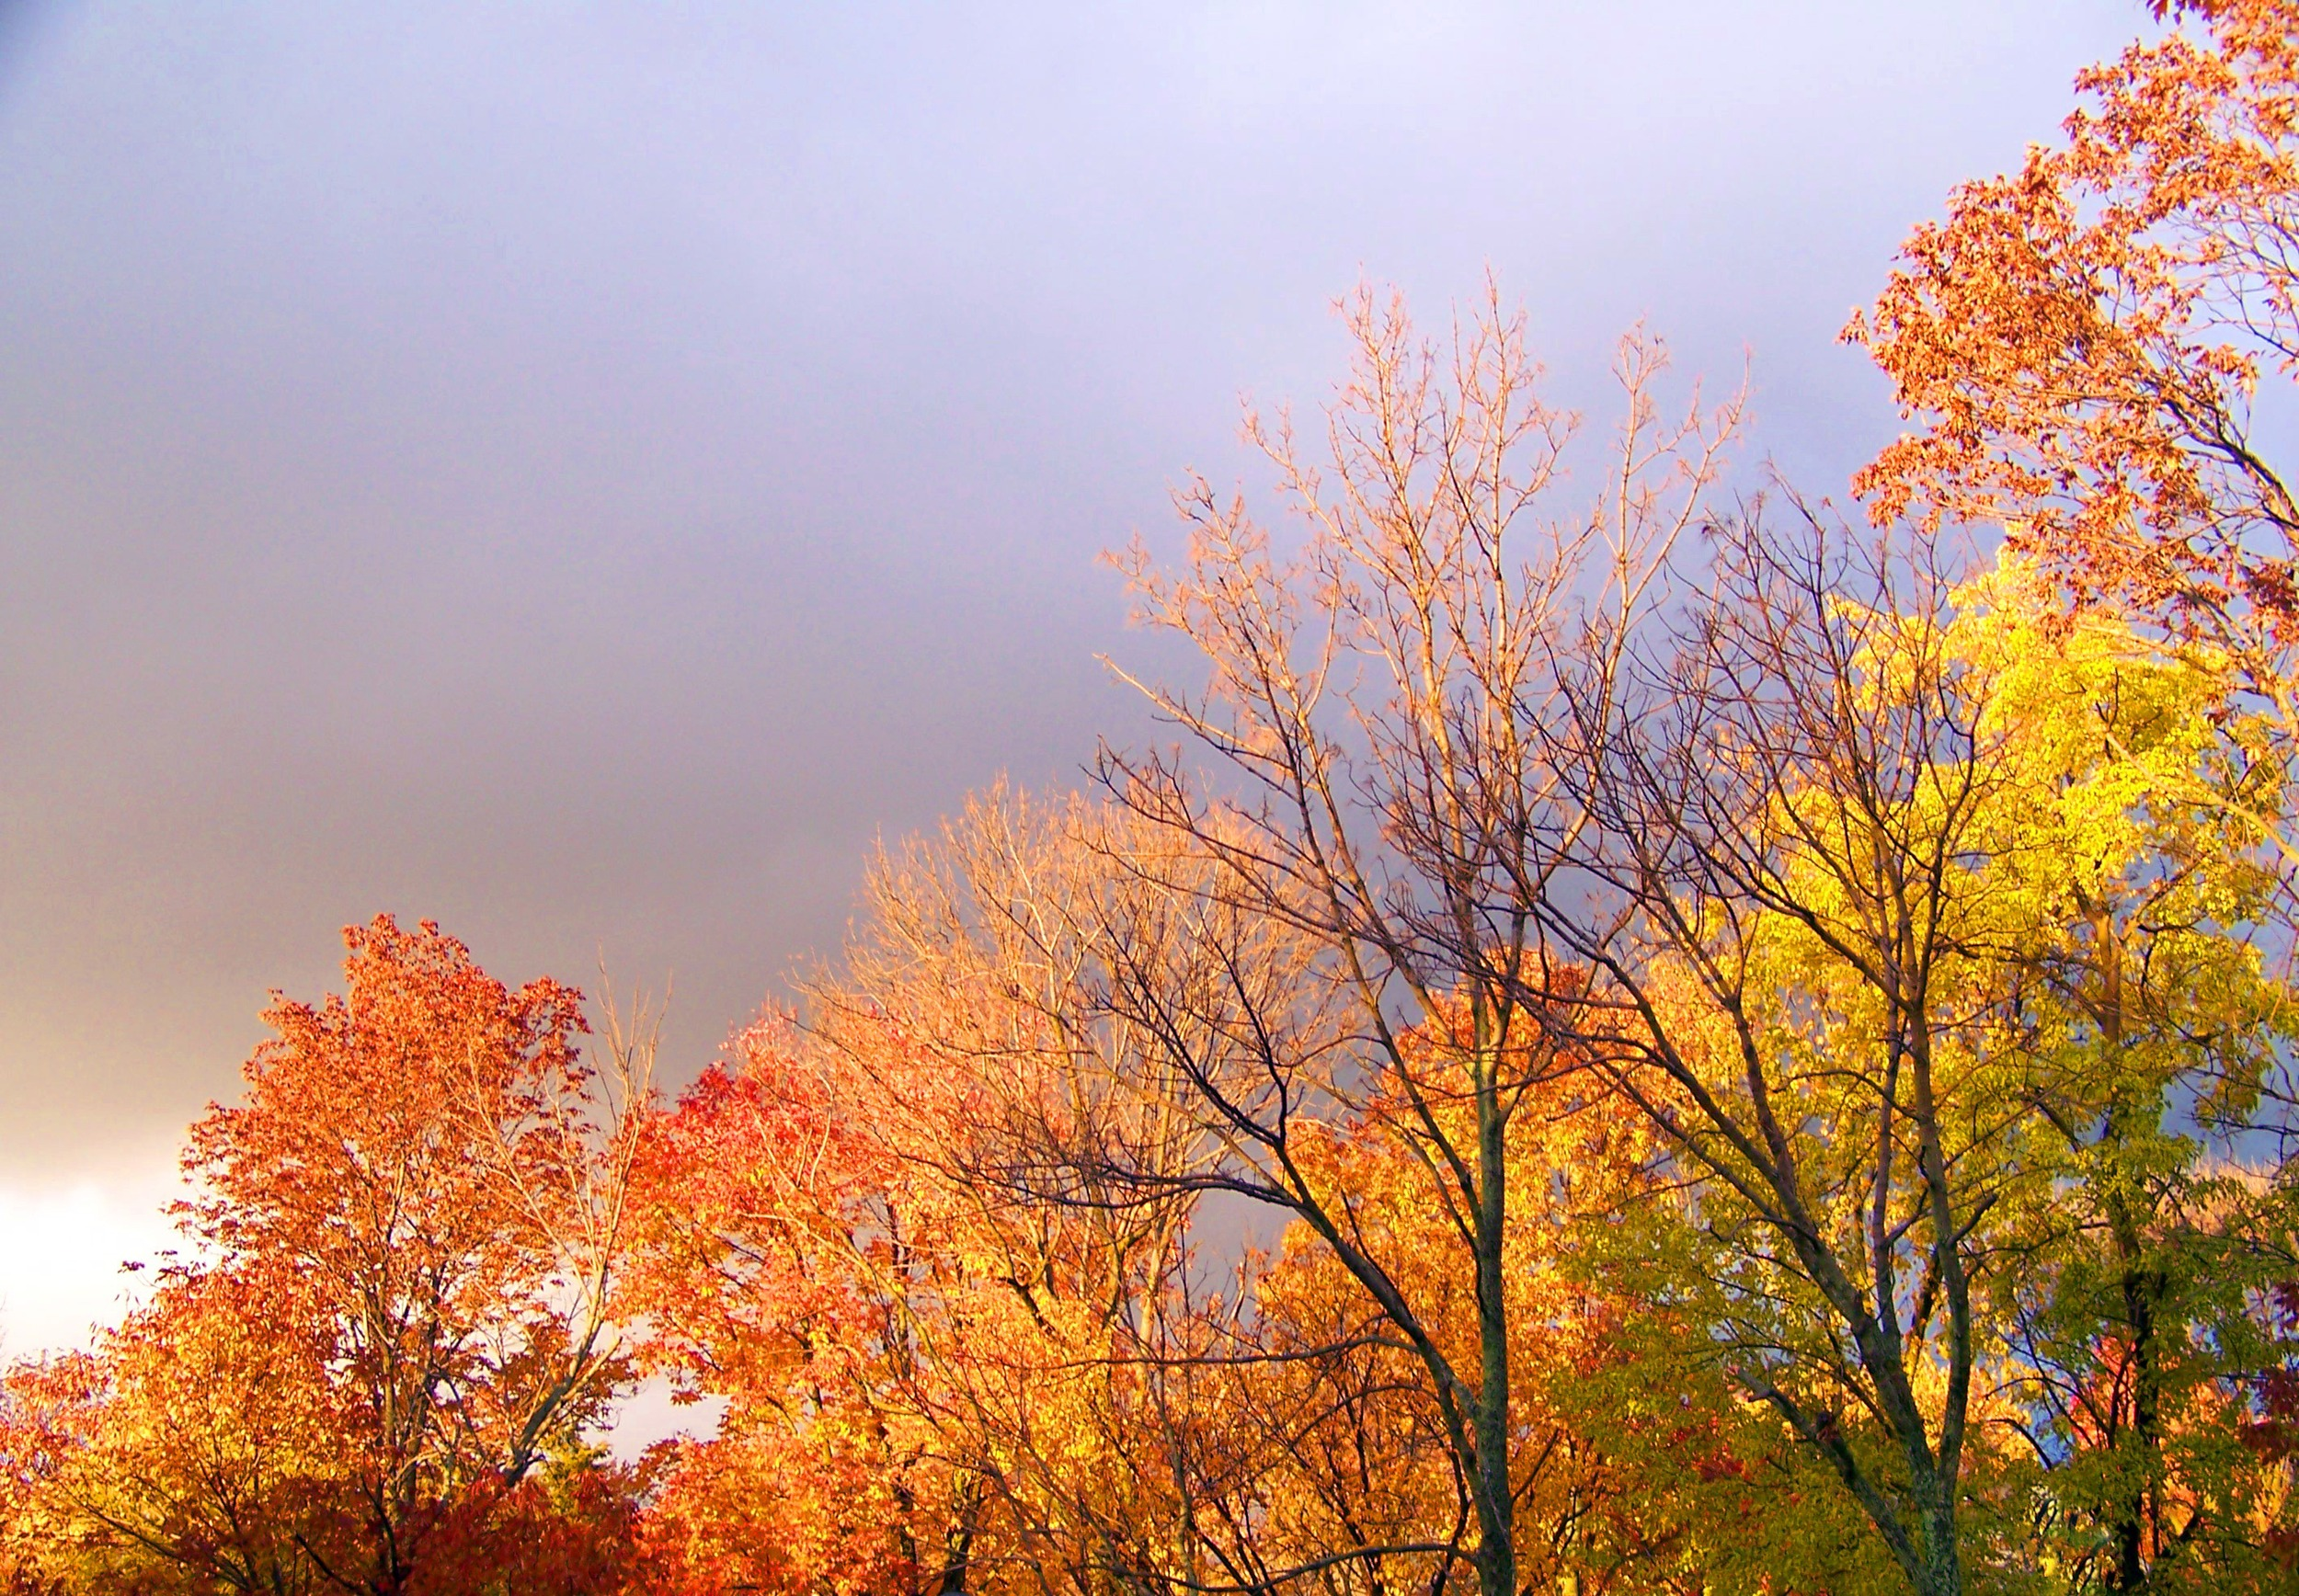 Obligatory photo of turning leaves and mildly threatening sky...